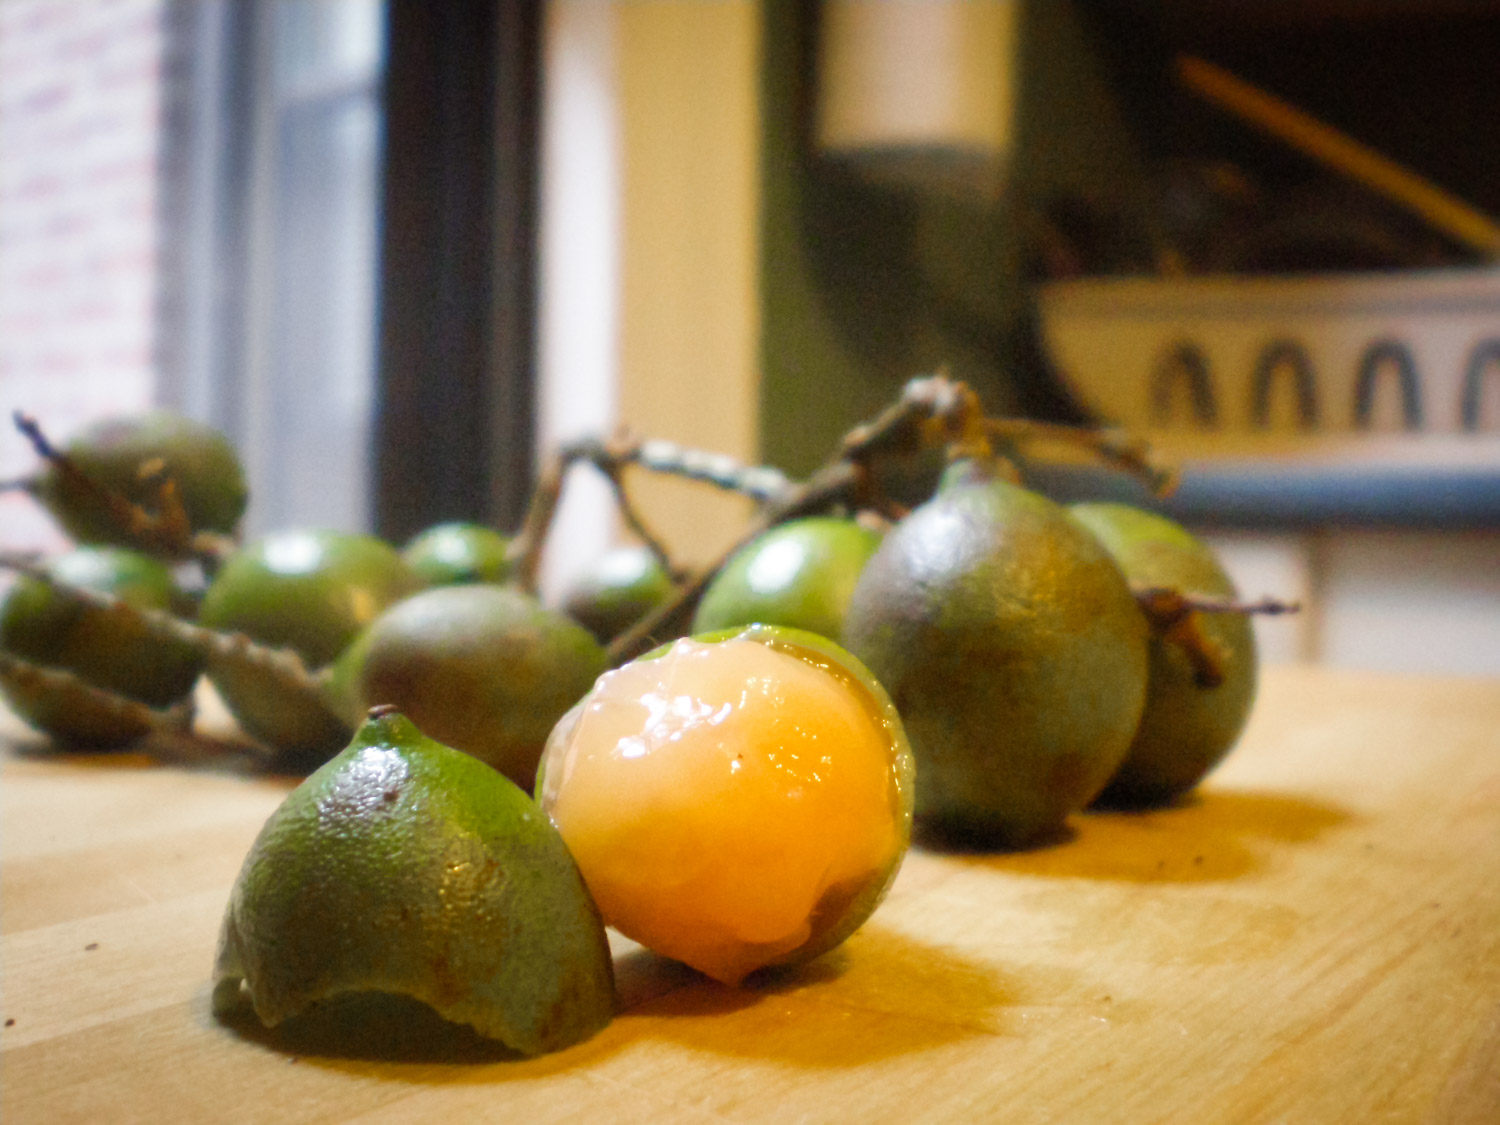 Quenepa also known as Spanish Lime is one of the tastiest exotic fruits. It is common in the Caribbean, Central and South America.